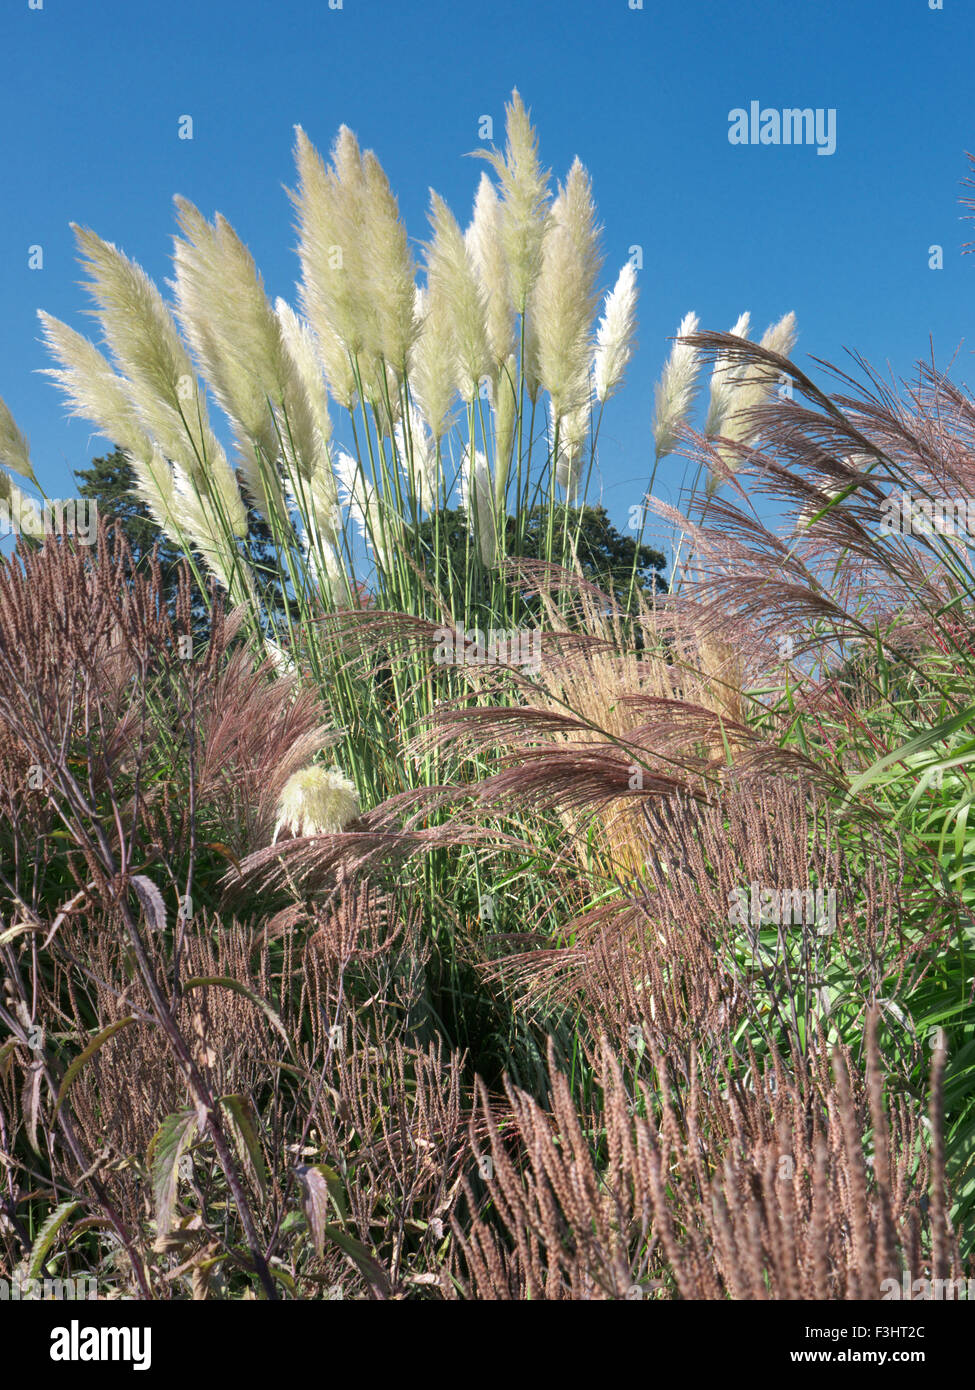 Cortaderia Selloana Commonly Known As Pampas Grass With Varieties